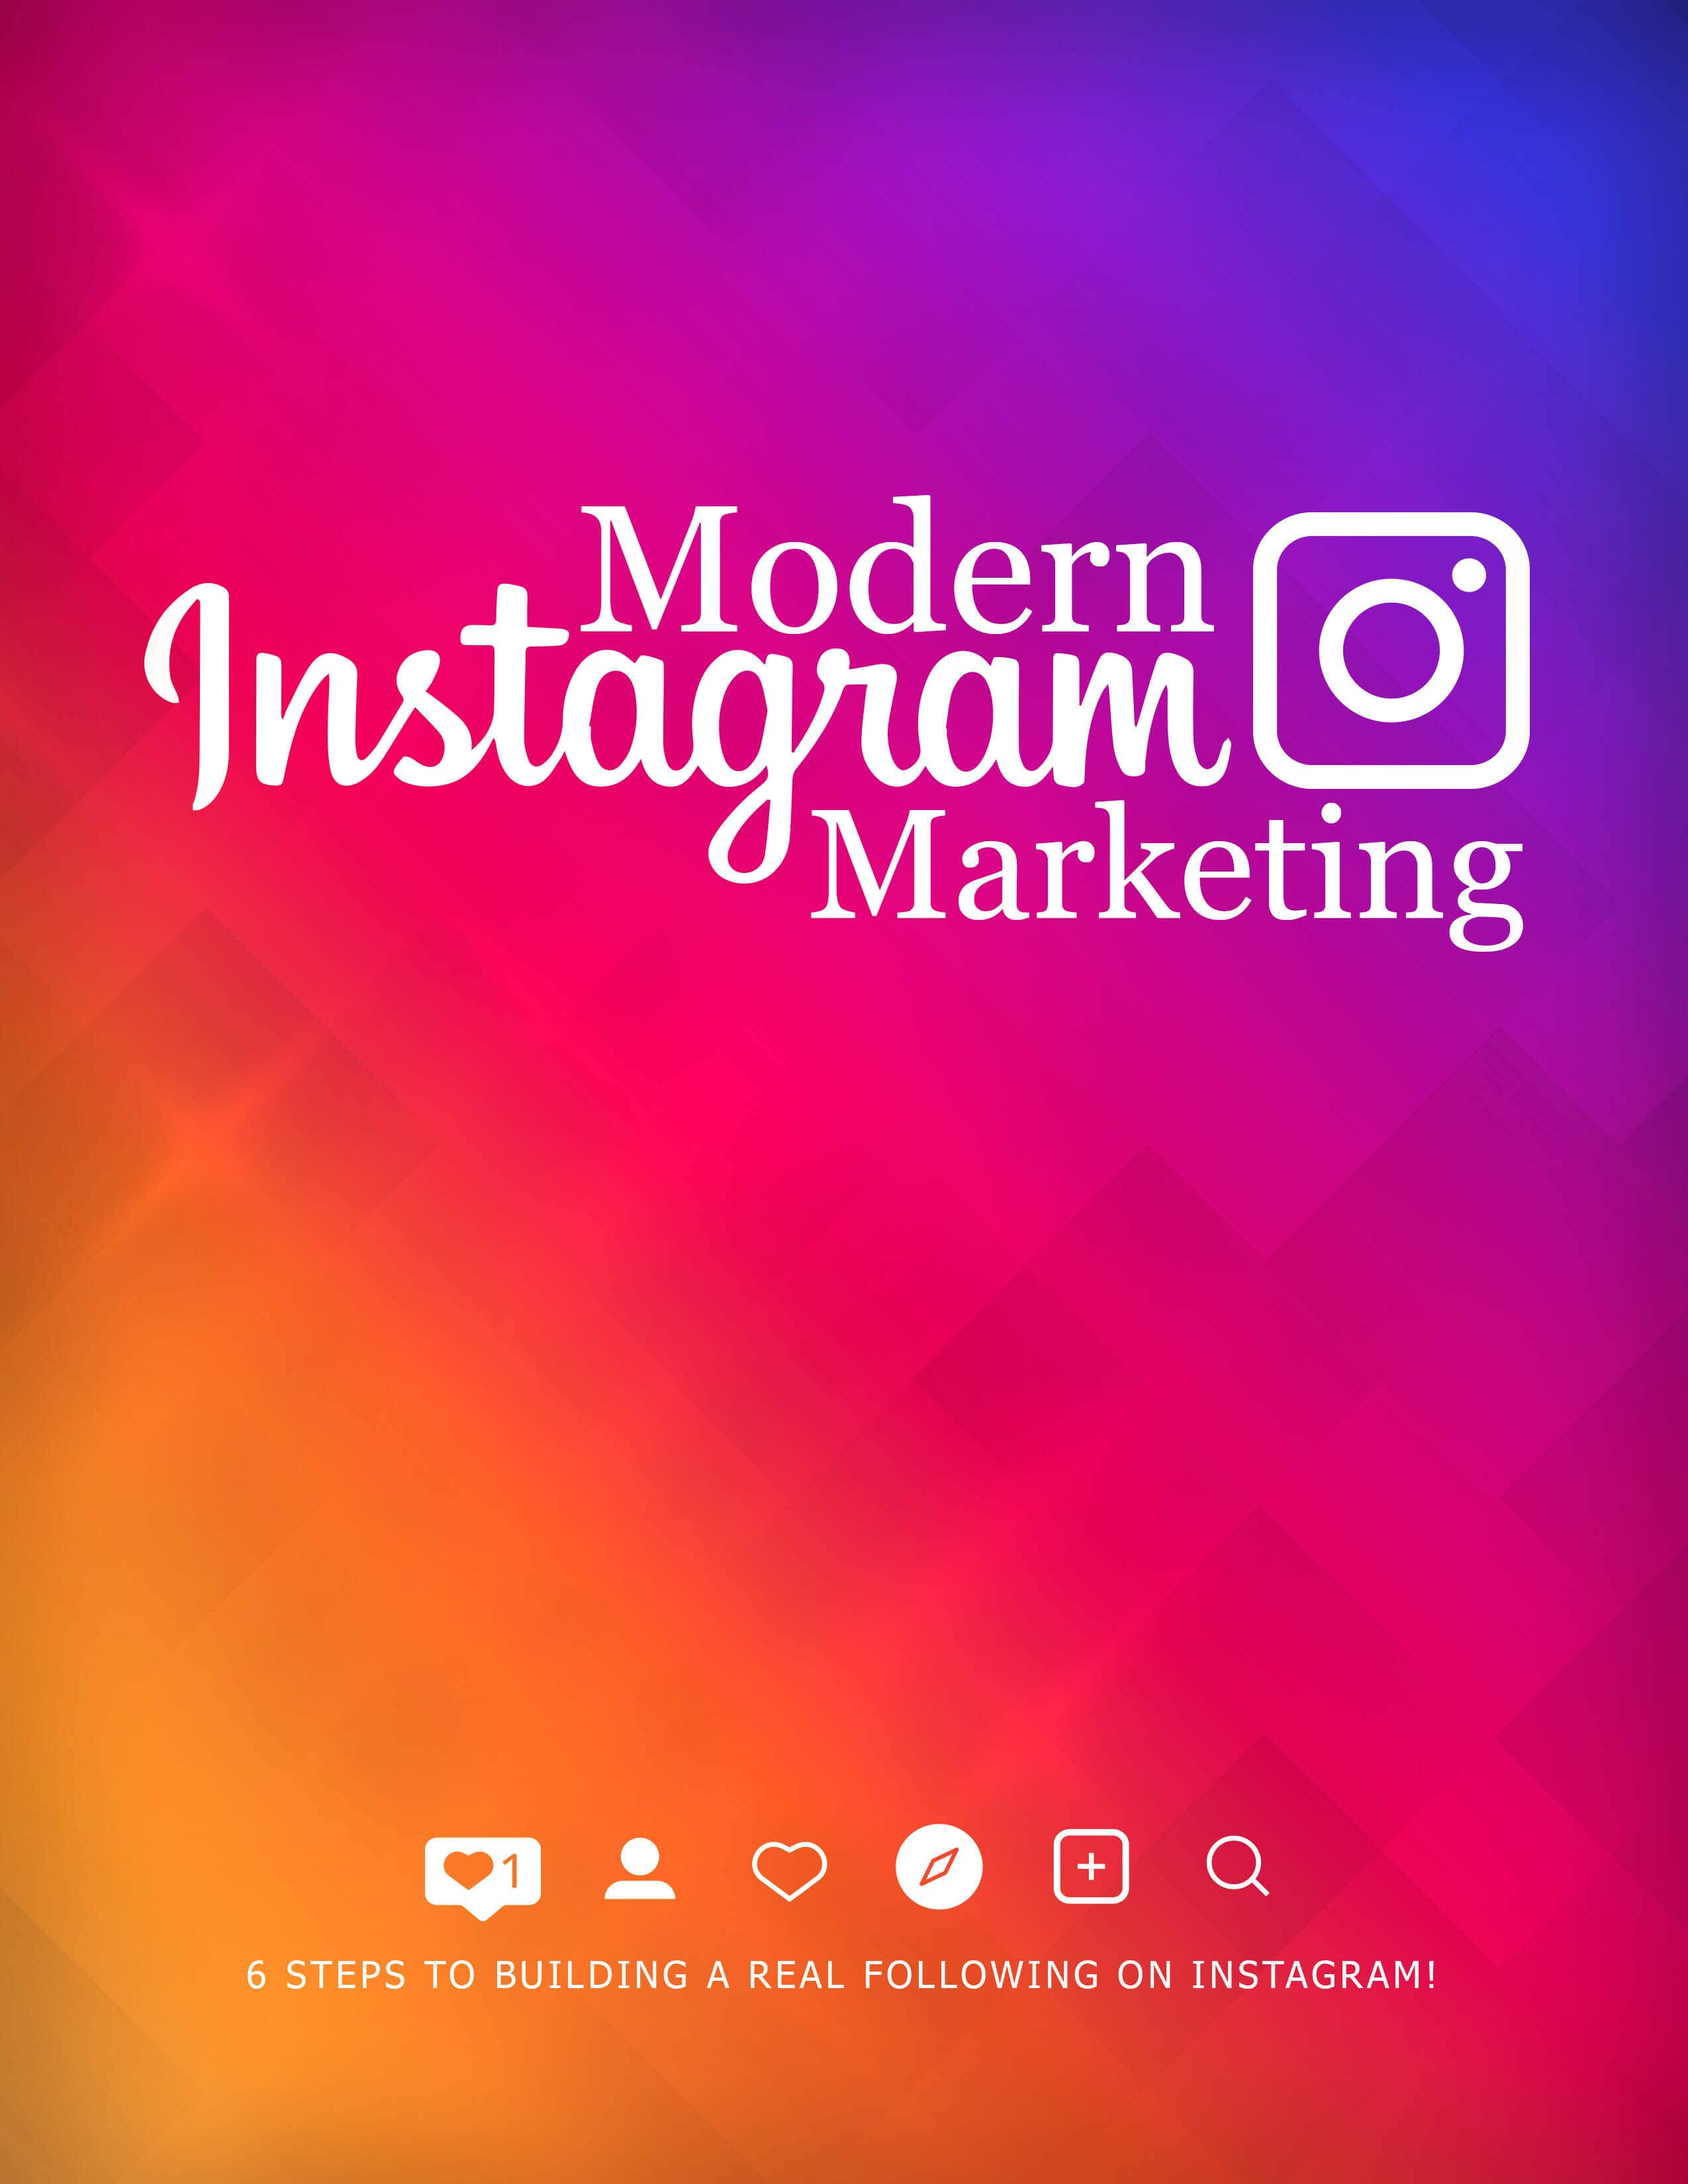 Modern Instagram Marketing (6 Steps To Building A Real Following On Instagram!) Ebook's Ebook Image